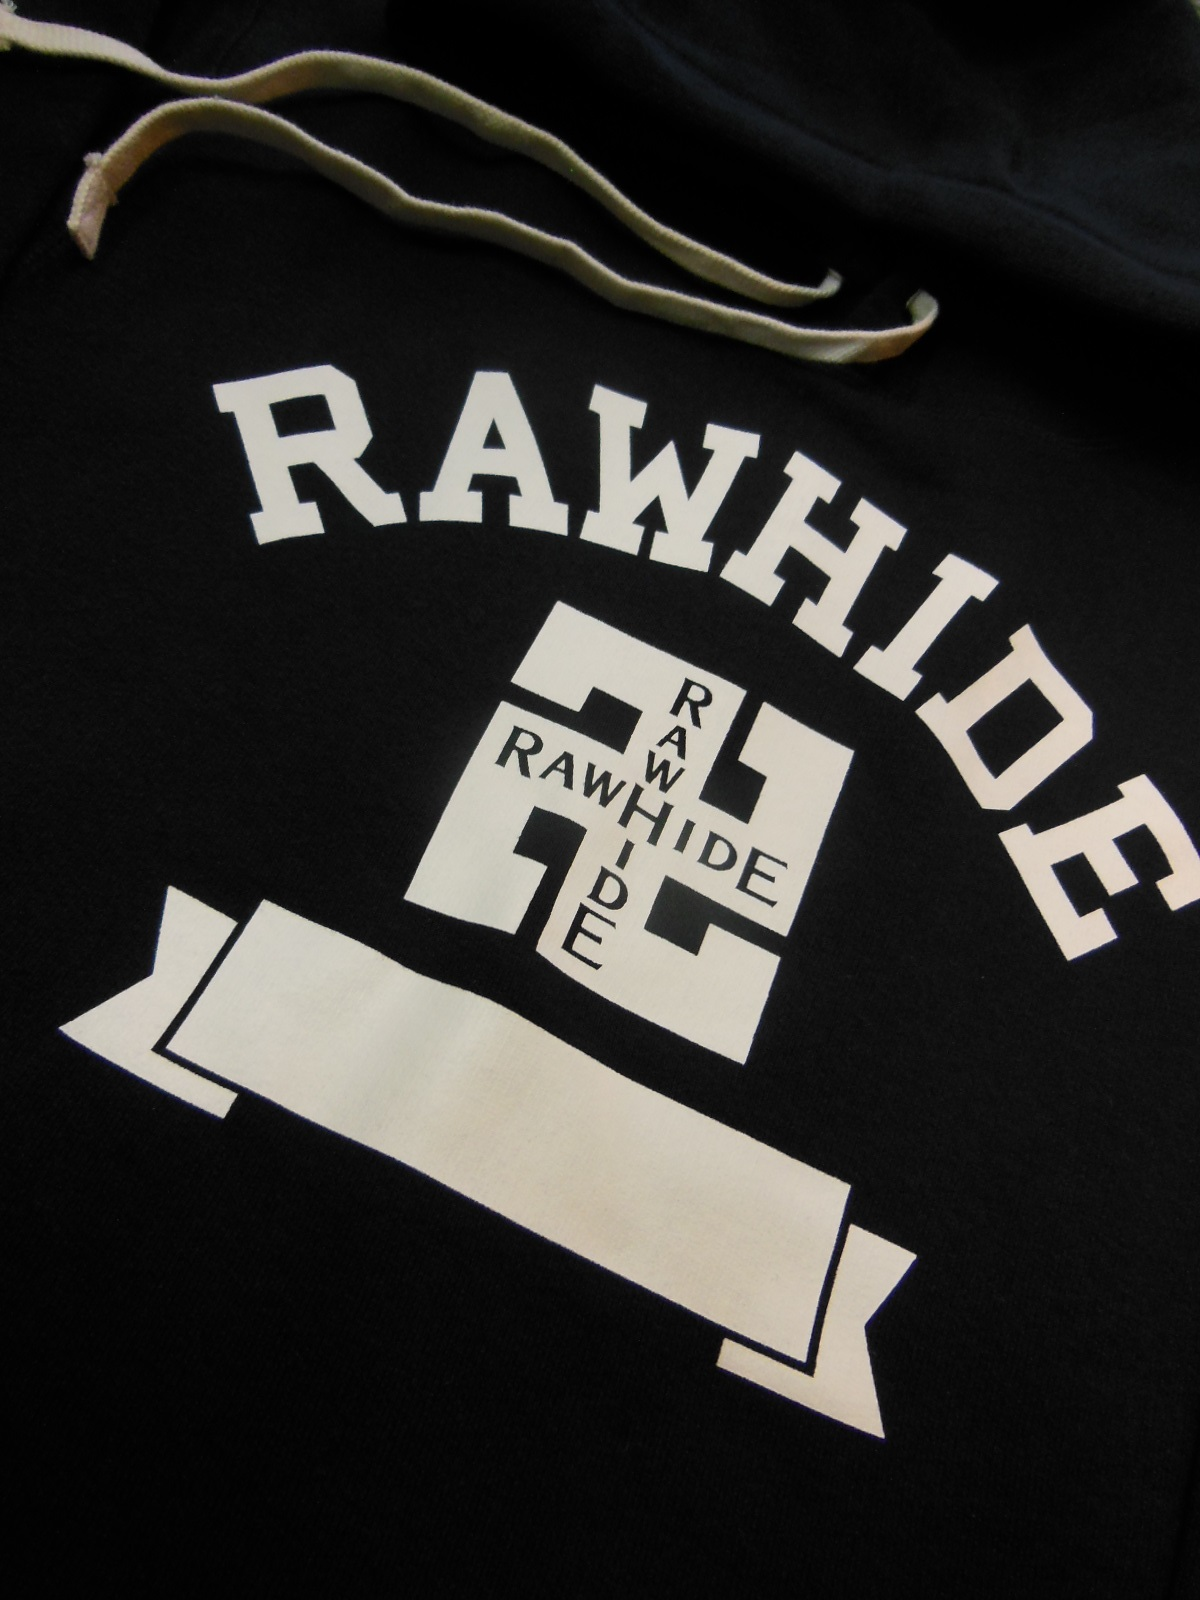 NEW RAWHIDE Whirling logs Tシャツ、パーカー入荷_c0187684_18415080.jpg